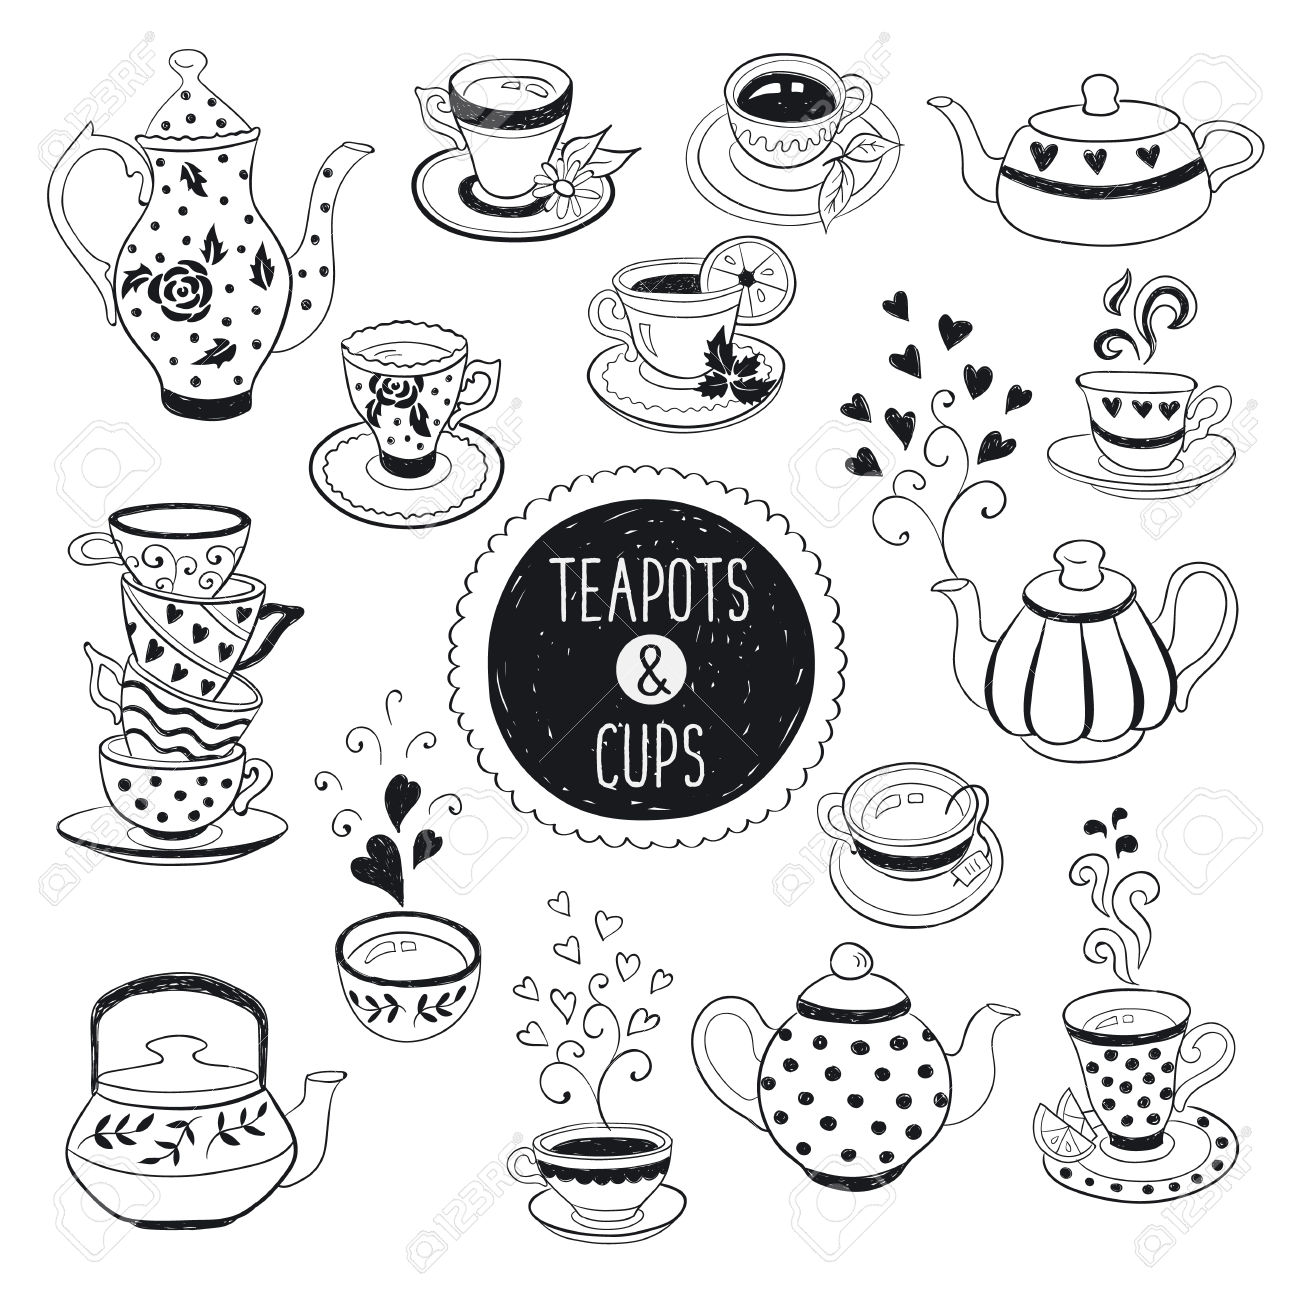 1300x1300 Hand Drawn Teapot And Cup Collection. Doodle Tea Cups, Coffee